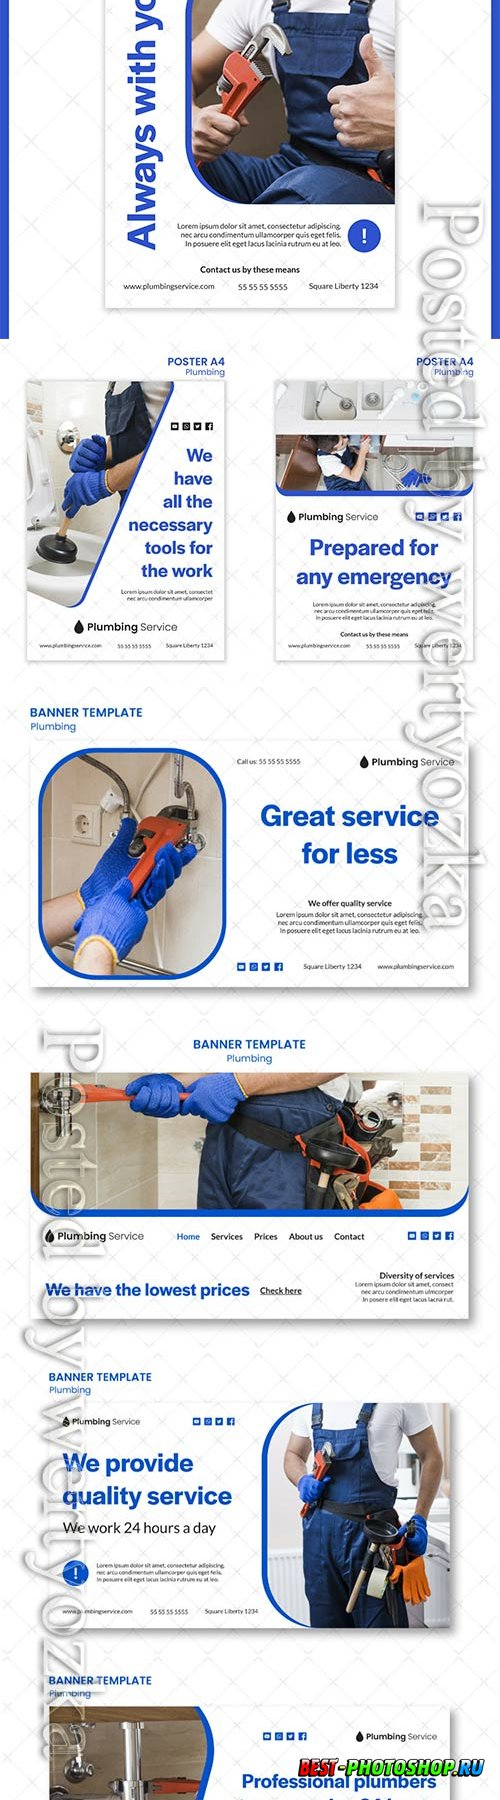 Plumbing lowest prices banner template